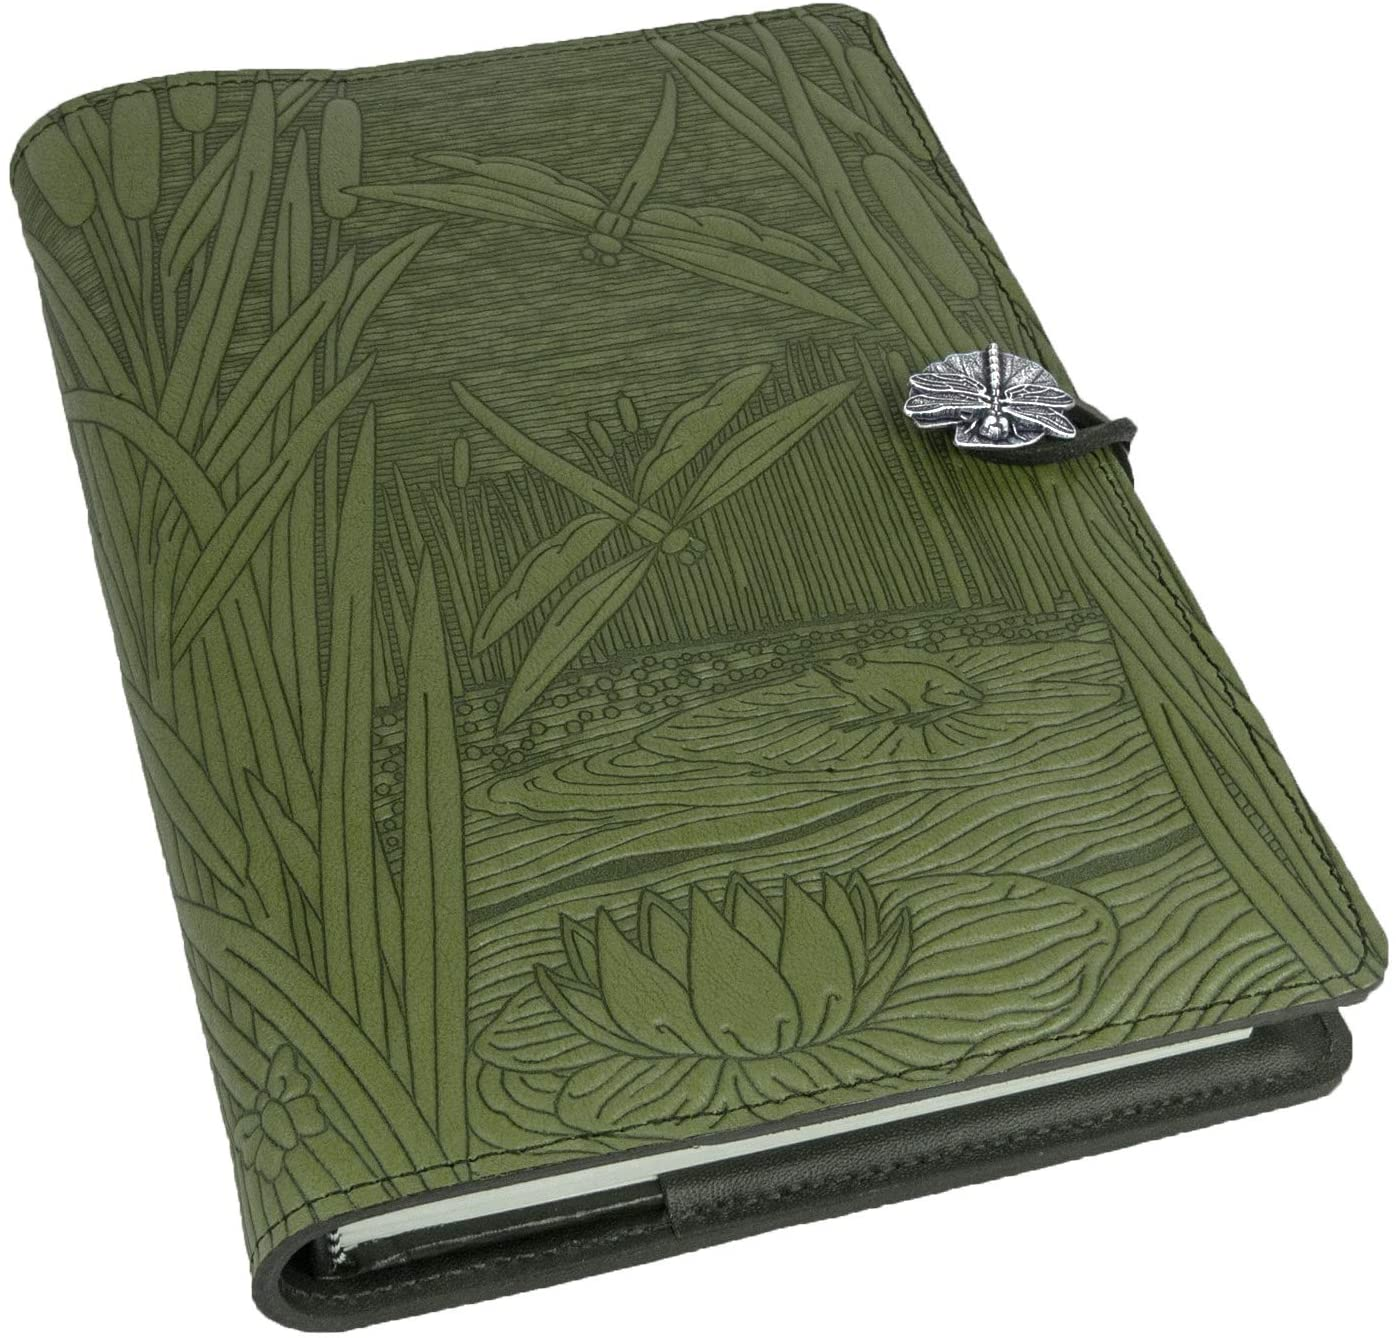 dragonfly-gifts-leather-journal